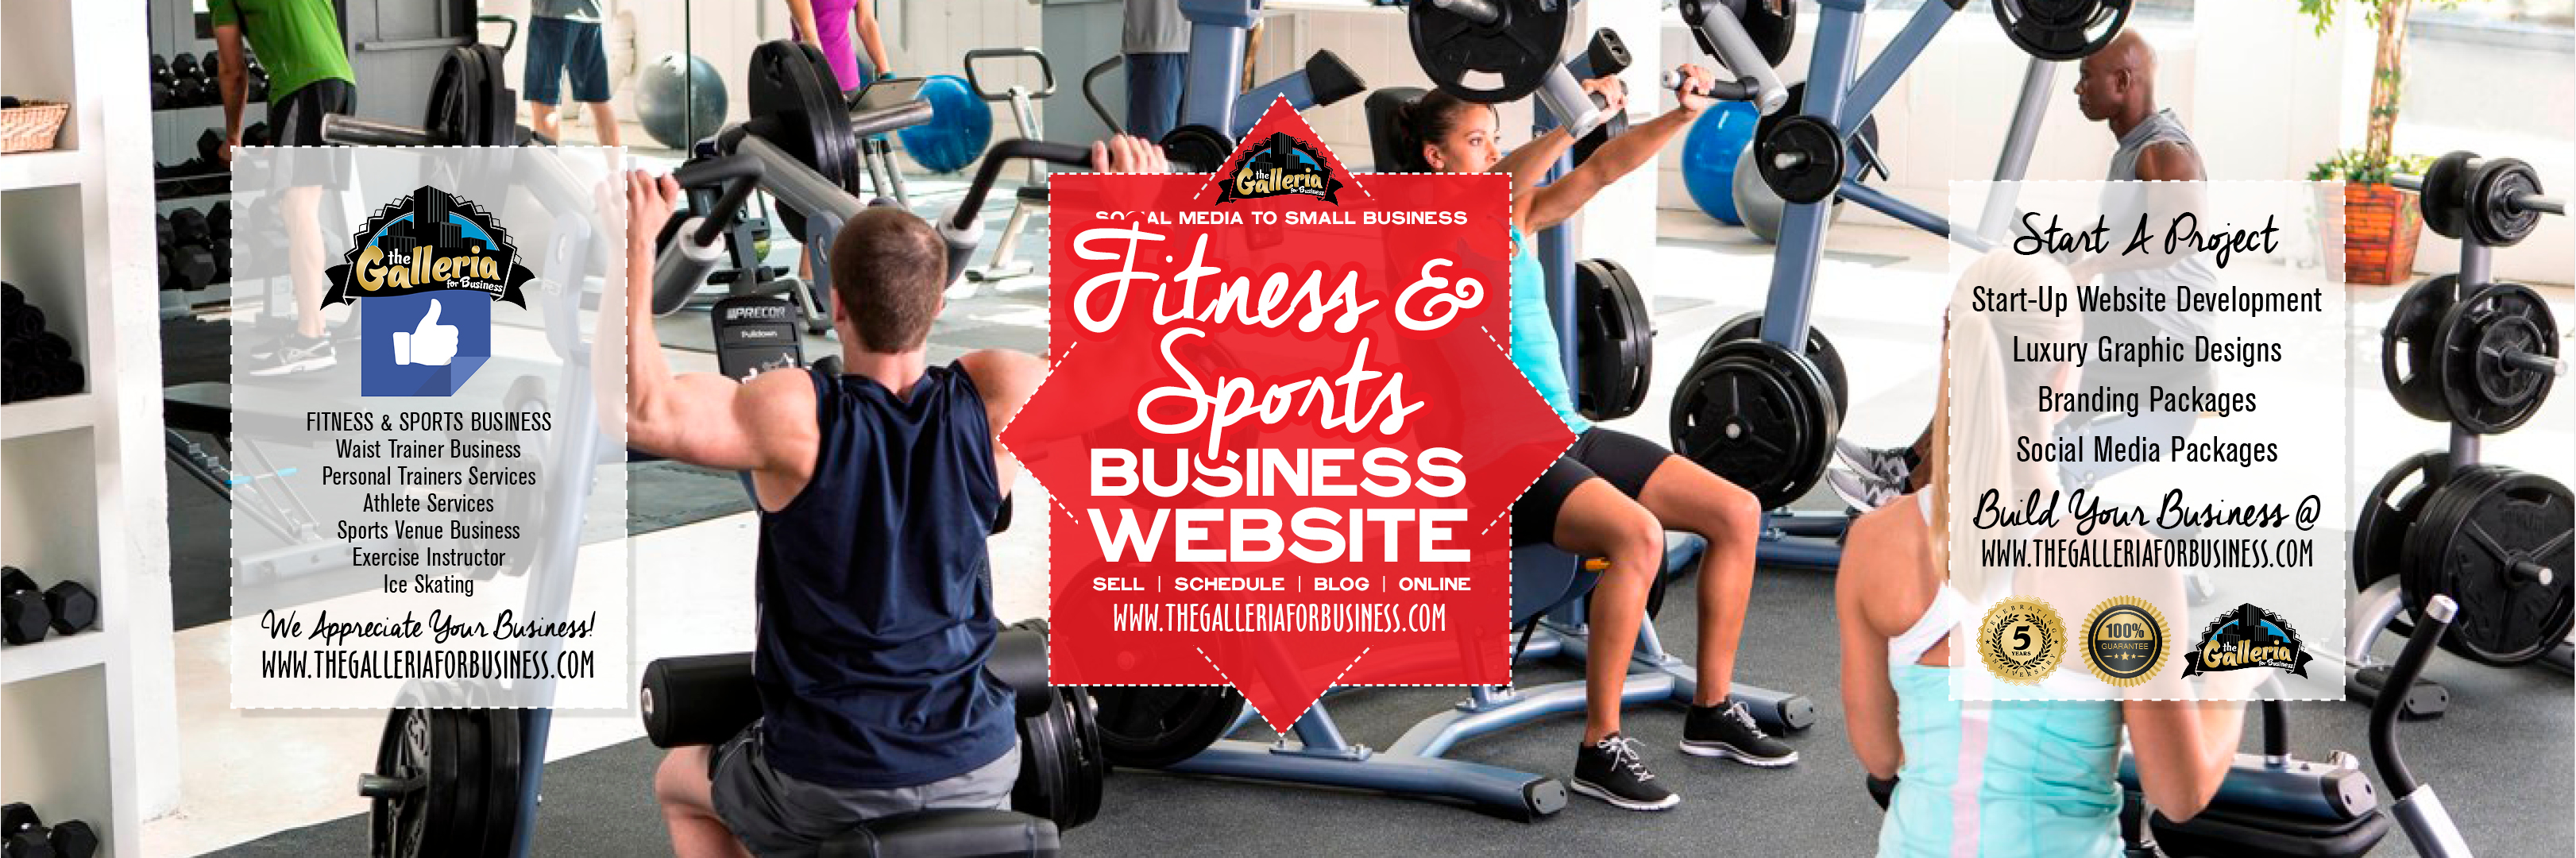 Fitness & Sports Business